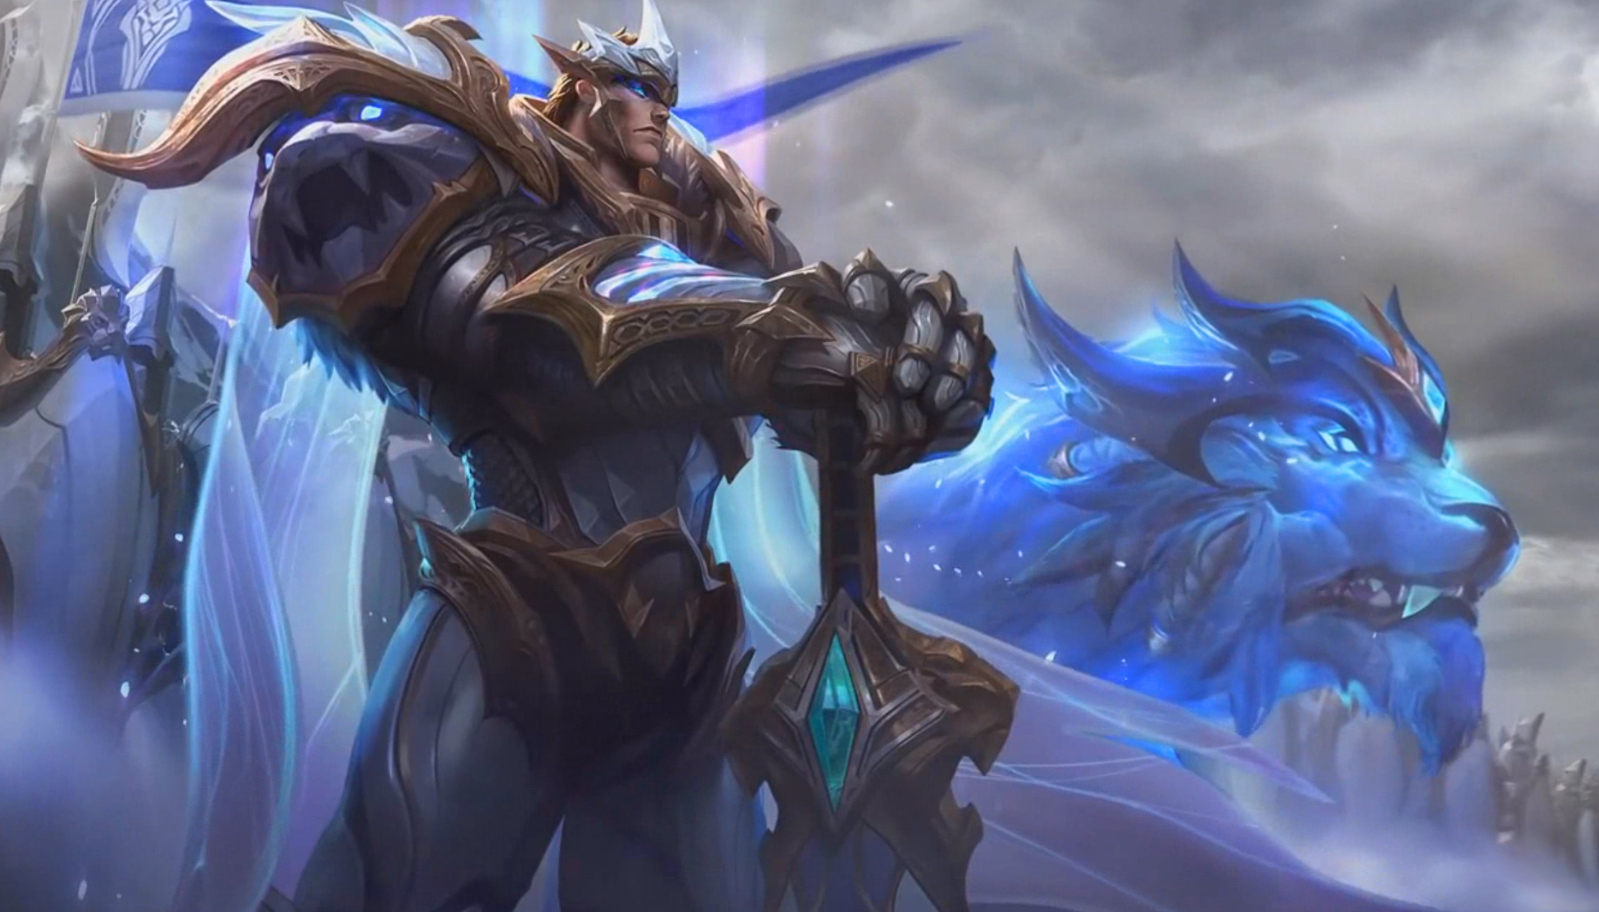 League of Legends God King Garen Login Screen Free Animated Wallpaper.